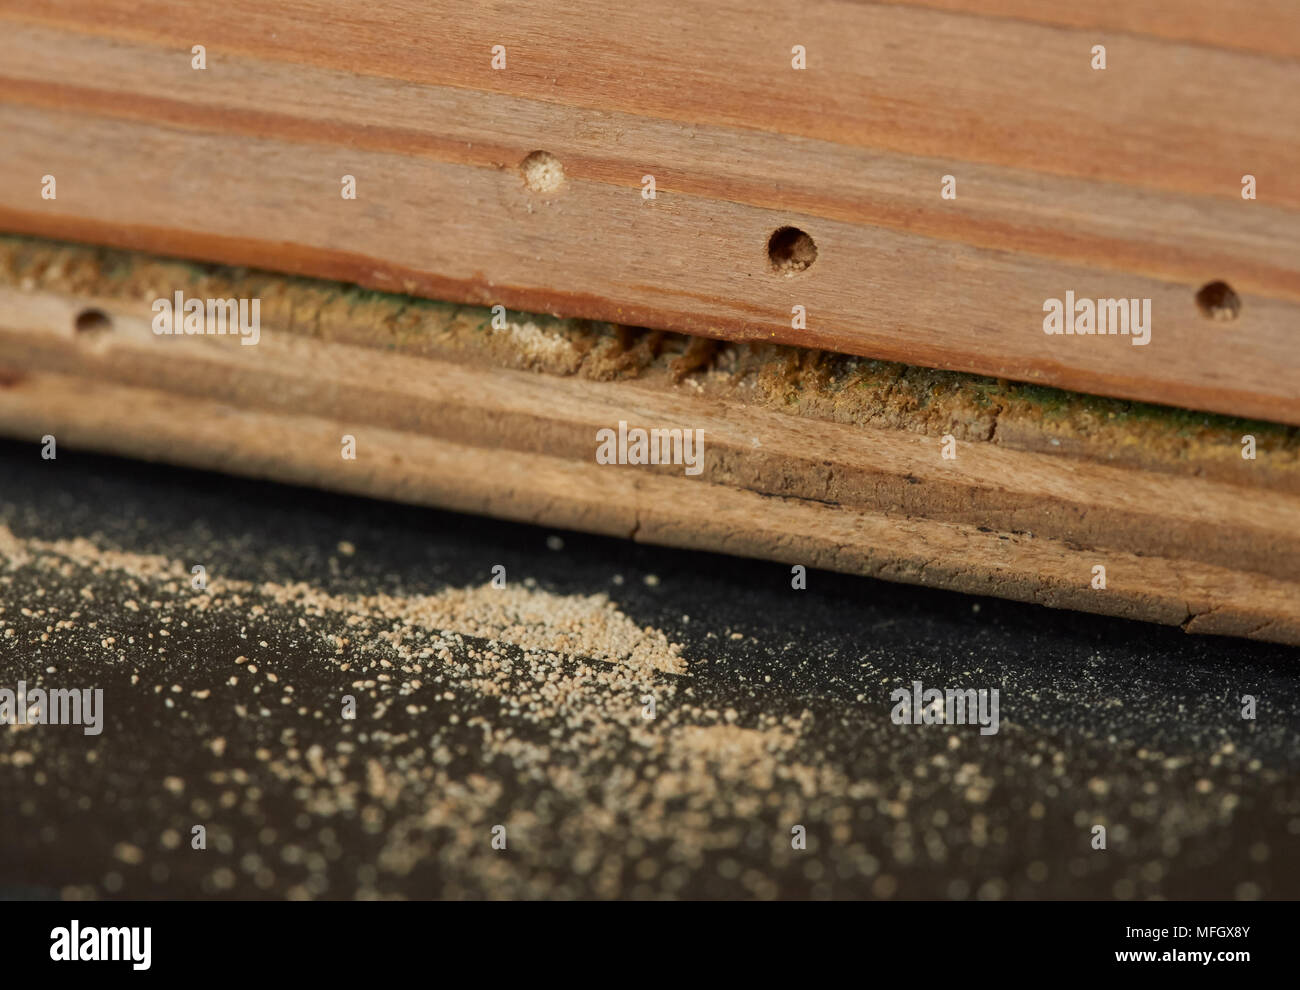 Holzwurm In Möbeln Woodworm Holes Stockfotos And Woodworm Holes Bilder Alamy